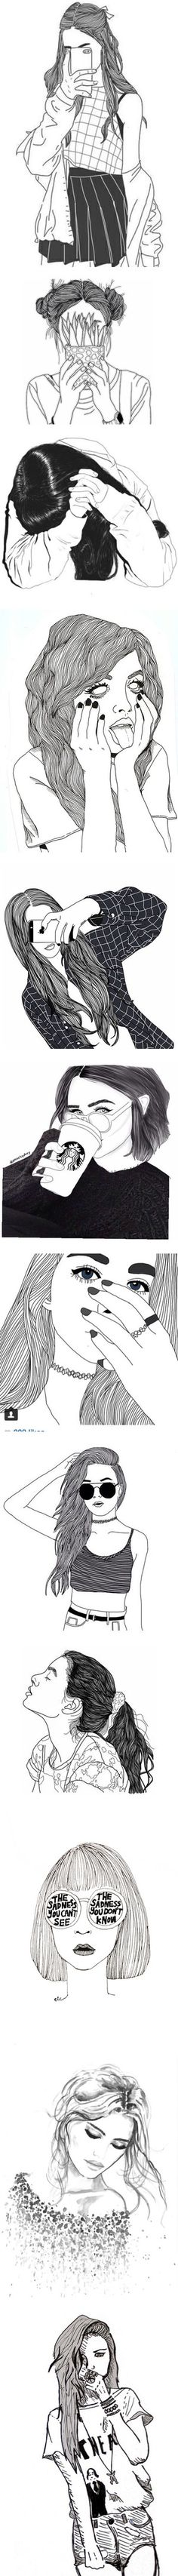 Drawings by bananafrog ❤ liked on polyvore amazing drawings cool drawings pencil